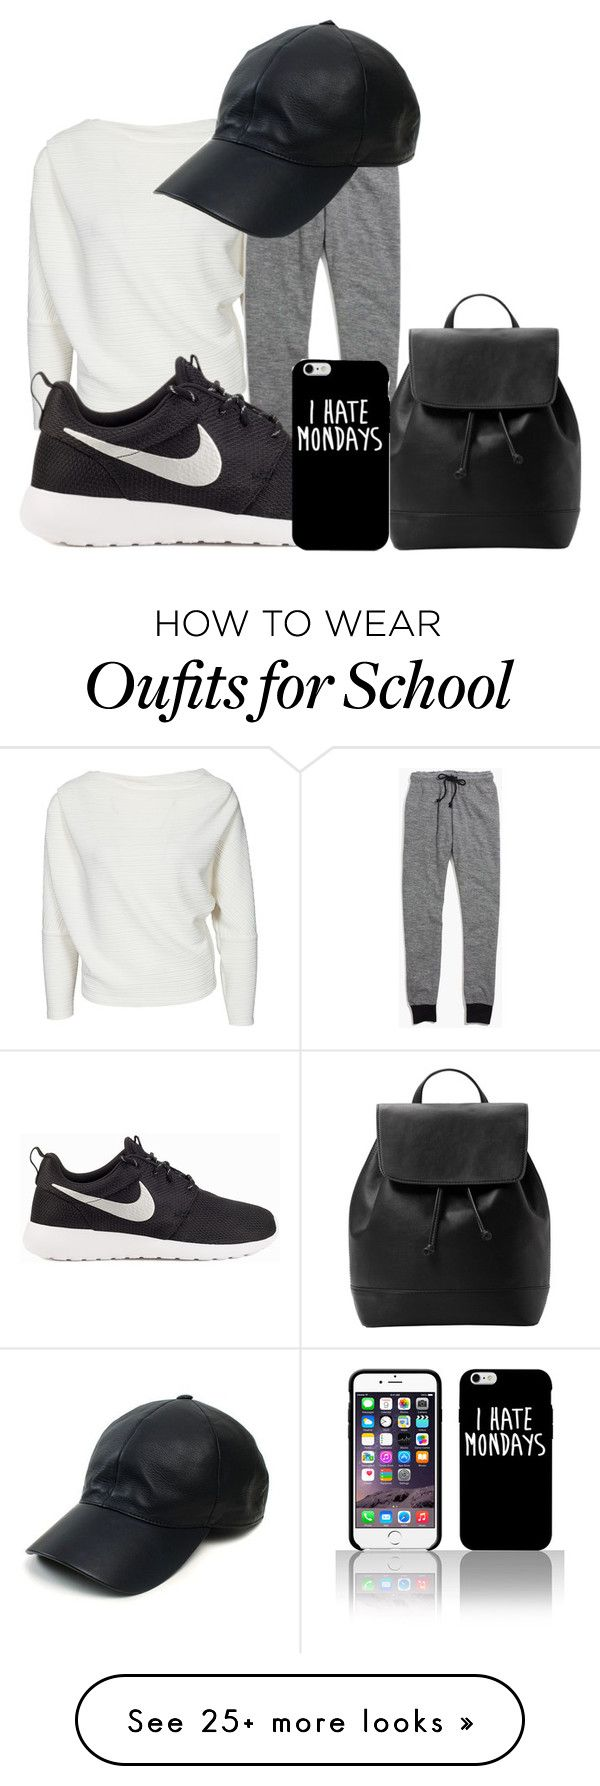 """My school style"" by arazzubair on Polyvore featuring Madewell, NIKE, Vianel, MANGO, women's clothing, women's fashion, women, female, woman and misses"